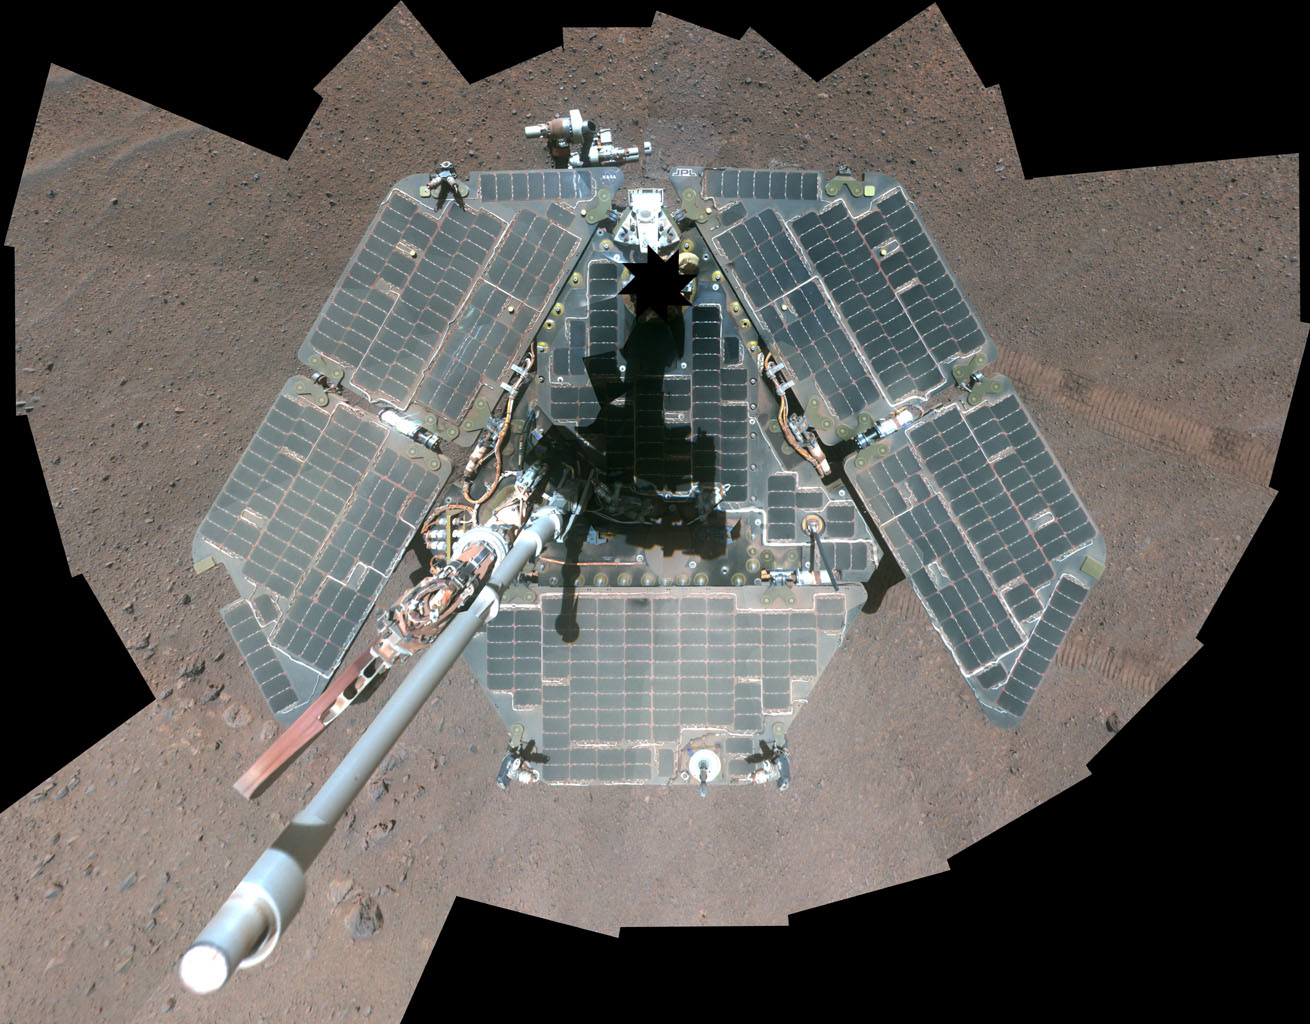 A false-color self-portrait of NASA's Mars Exploration Rover Opportunity taken by the rover's panoramic camera (Pancam) shows effects of recent winds removing much of the dust from the solar arrays.